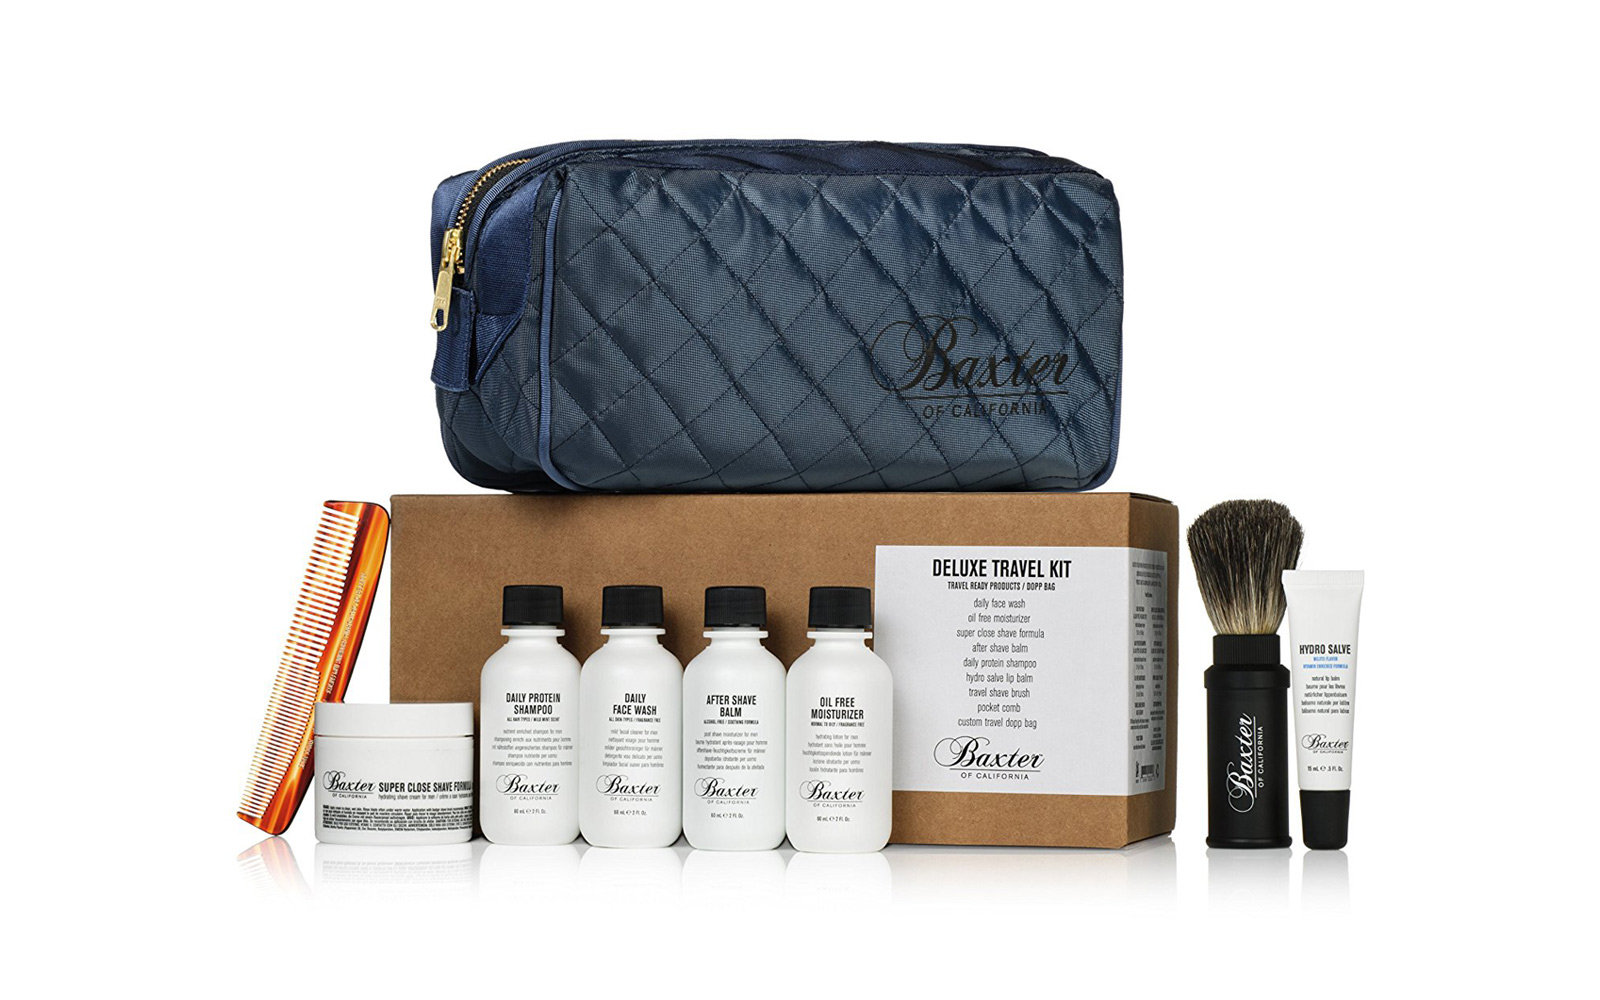 Baxter of California Deluxe Travel Kit